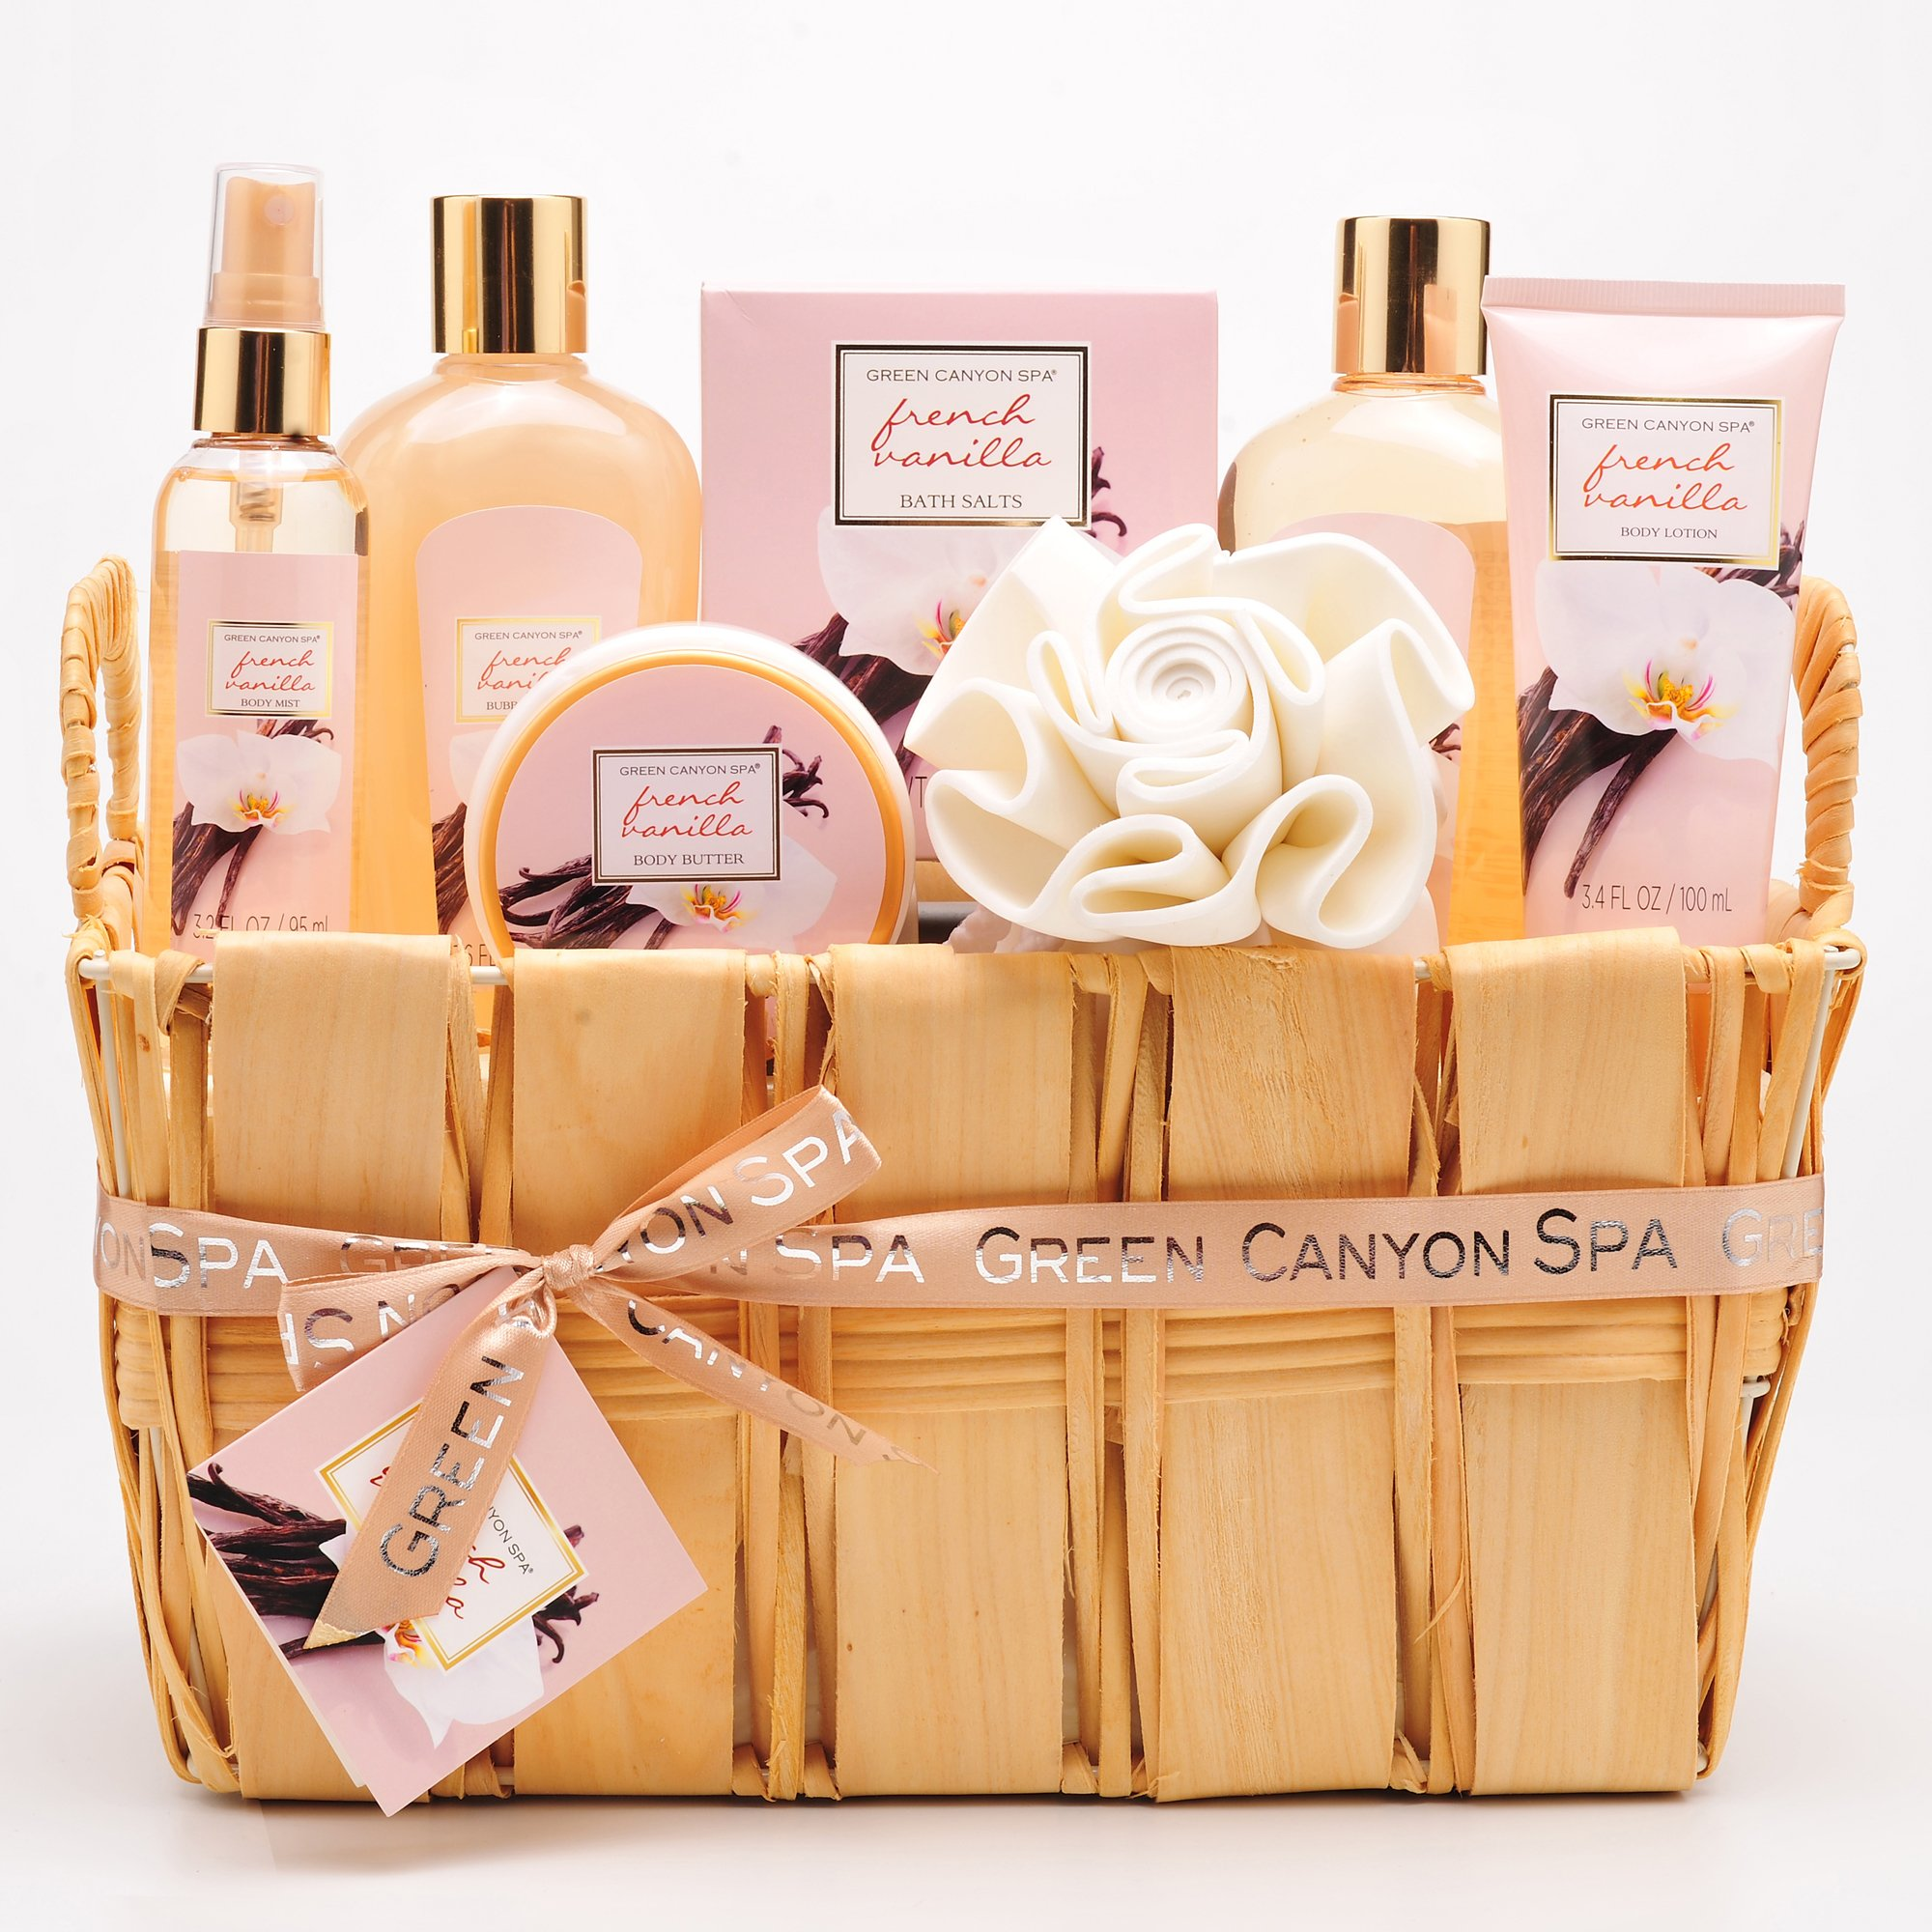 Deluxe Lush Spa Gift Basket Set - French Vanilla Essential Oil 8-Piece Premium  sc 1 st  eBay & Deluxe Lush Spa Gift Basket Set - French Vanilla Essential Oil 8 ...